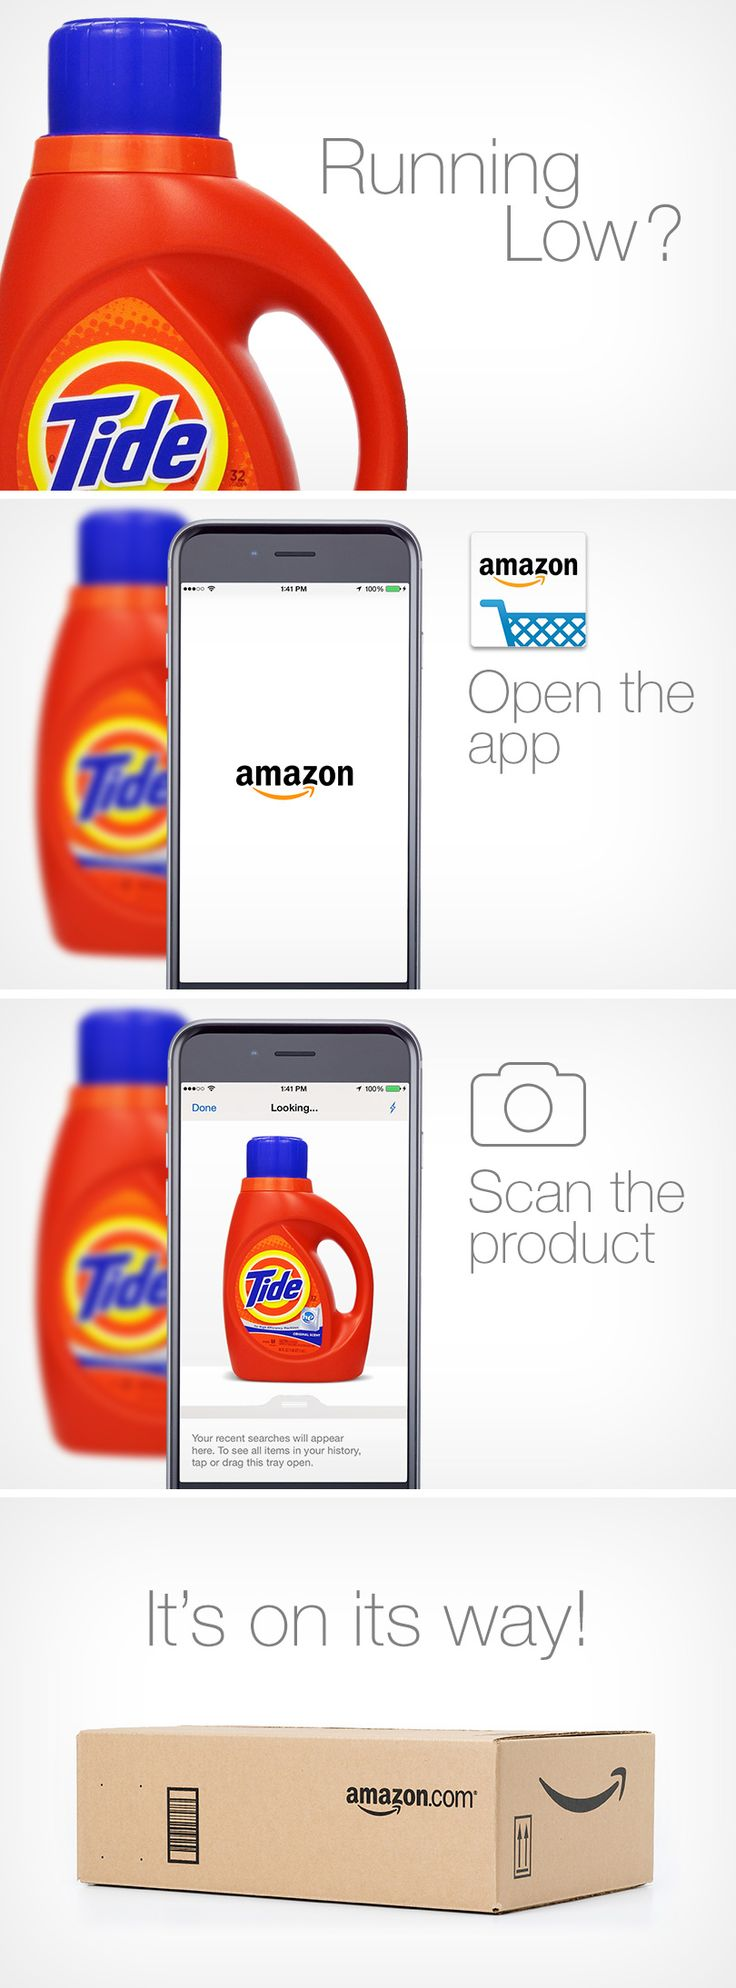 Running low on Tide? Order it in a pinch with the Amazon Shopping app. Open the app, scan the product or barcode, and have your essentials shipped right to your door. Shop and save on household items your family needs most, including laundry soap, cleaning supplies, paper products, beauty, and more.